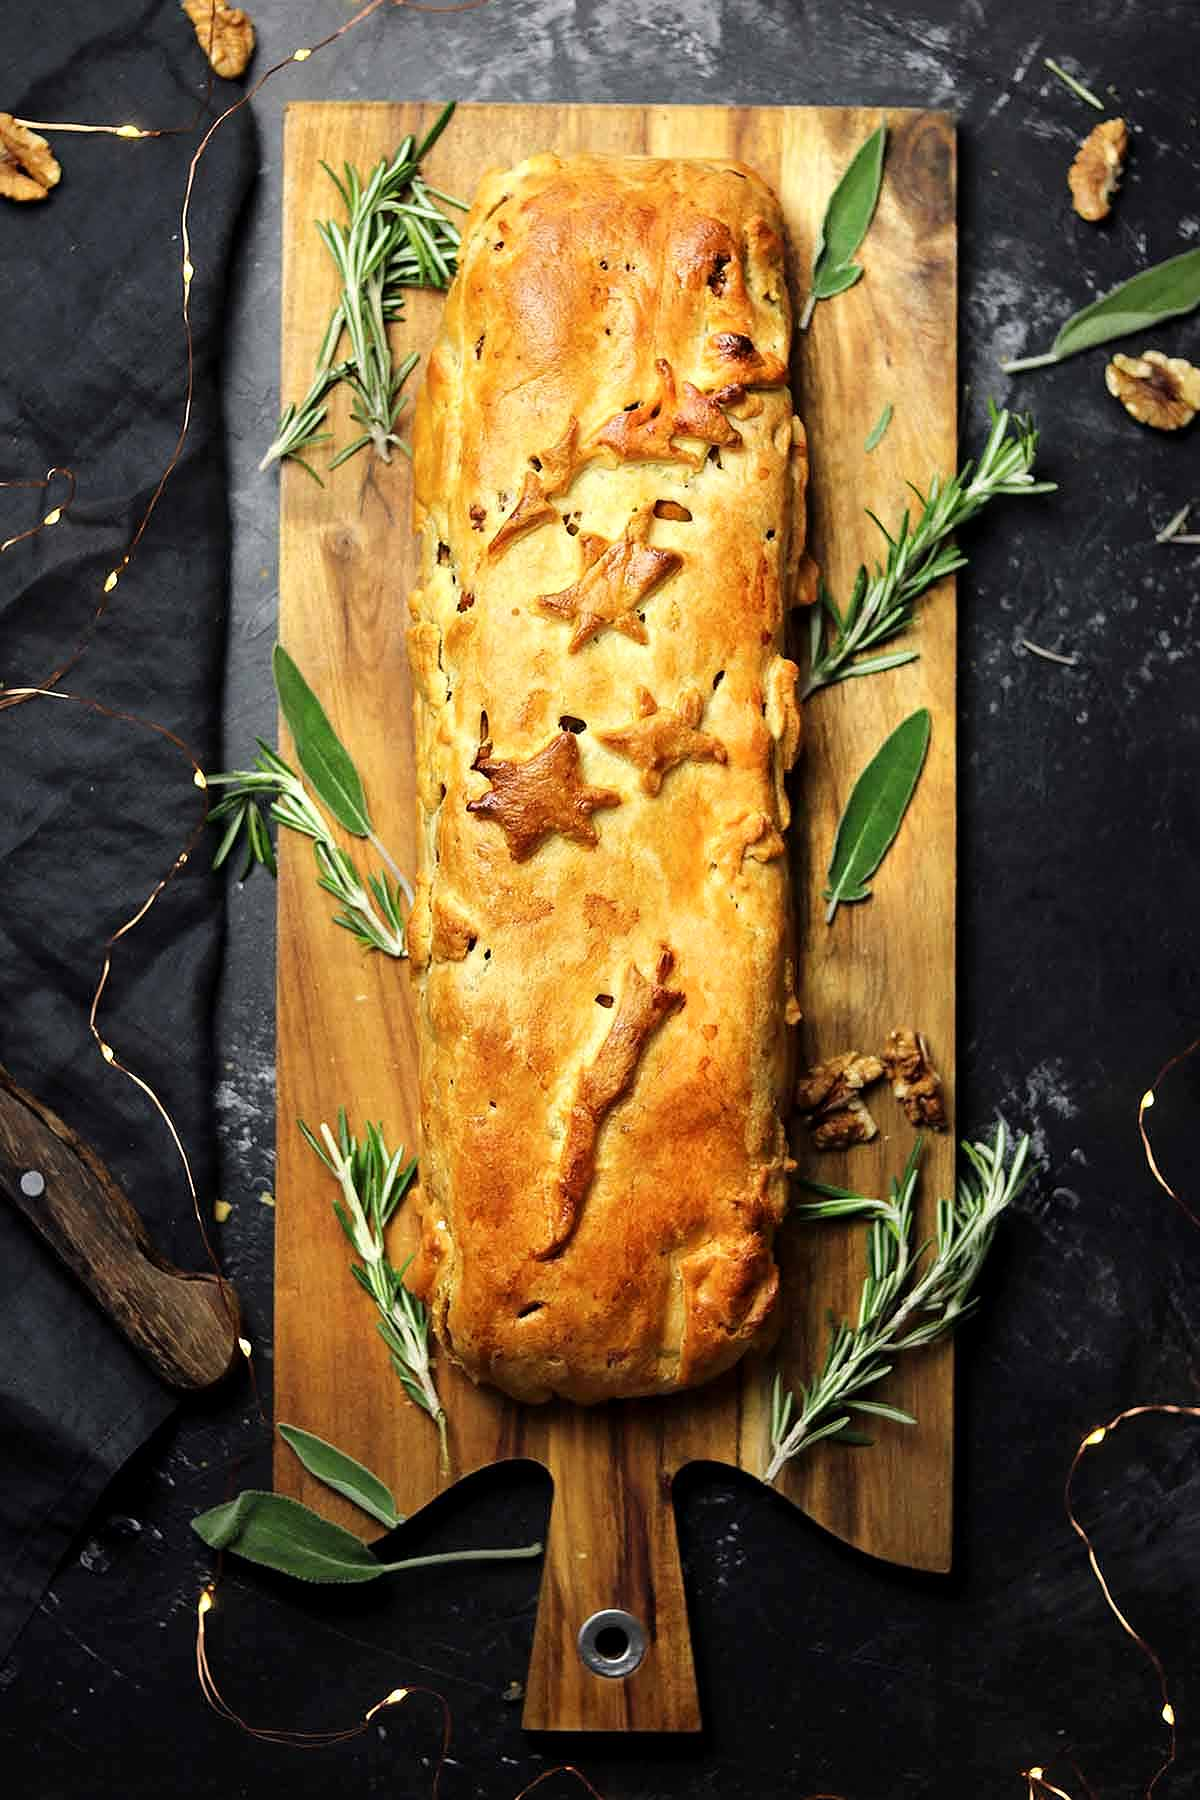 Nut roast wrapped in a pastry with rosemary and sage.